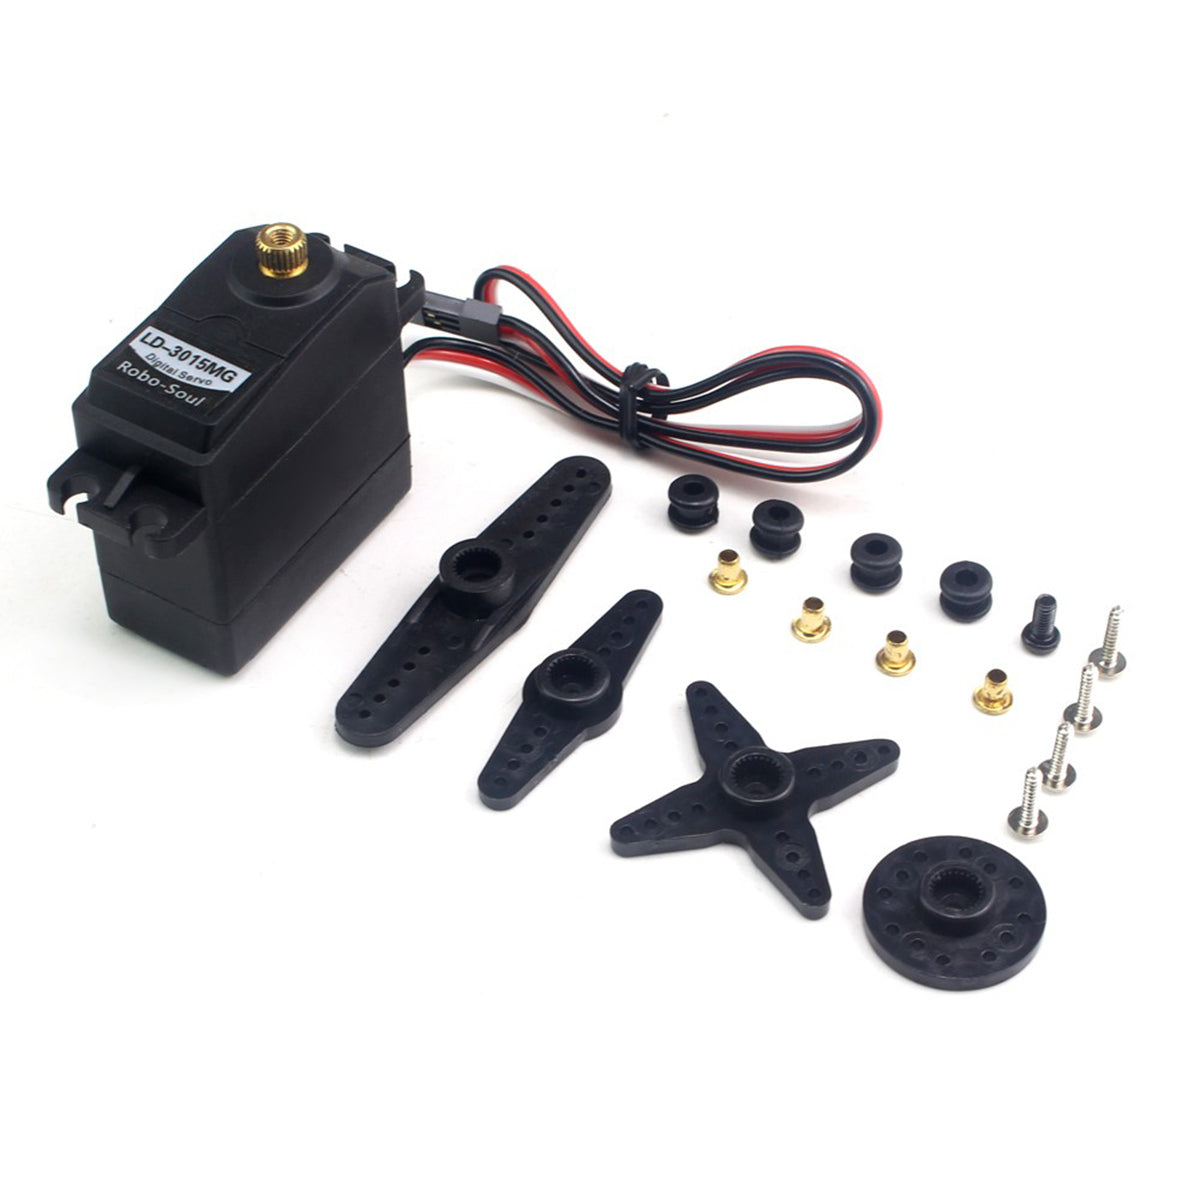 Hiwonder LD-3015MG  Full Metal Gear Digital Servo with 17kg High Torque for RC Robot Car